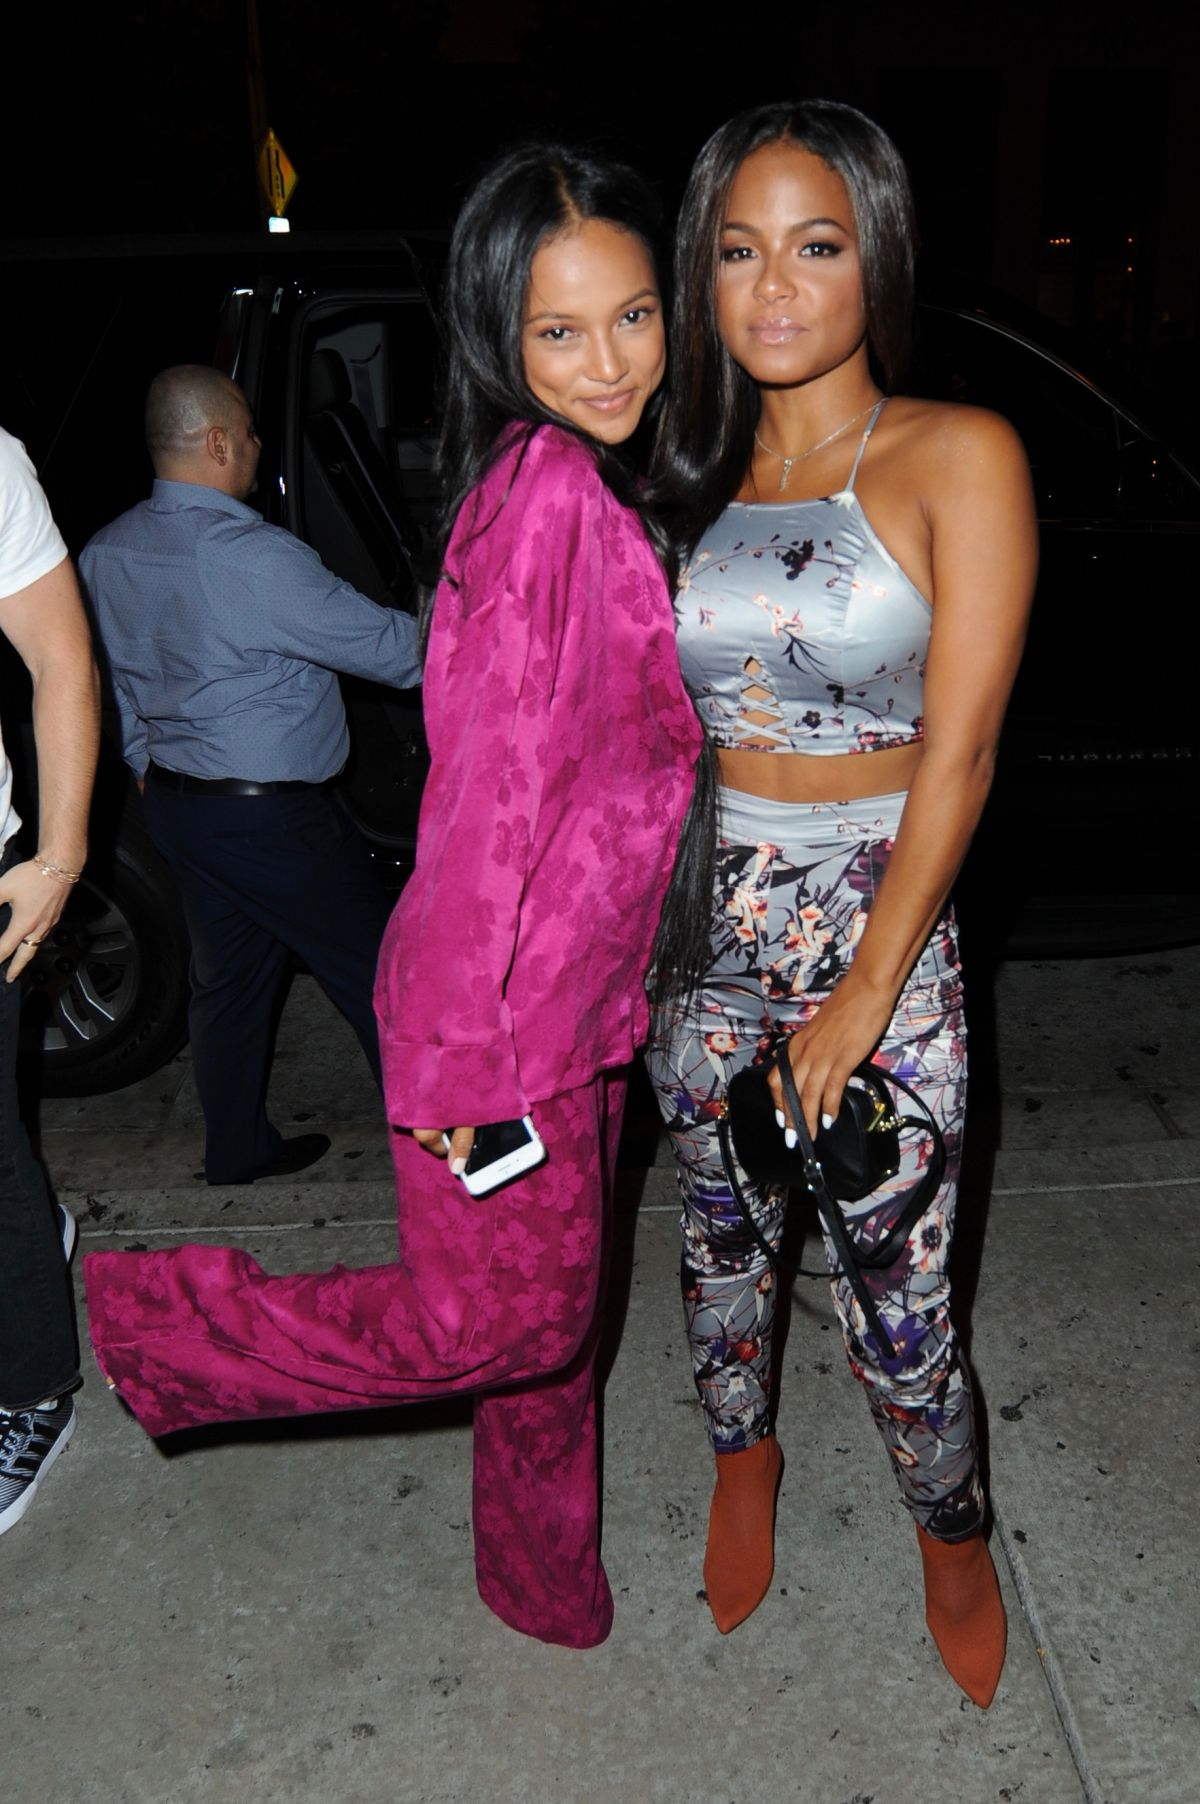 CHRISTINA MILIAN and KARRUECHE TRAN at Catch LA in West Hollywood 08/03/2017